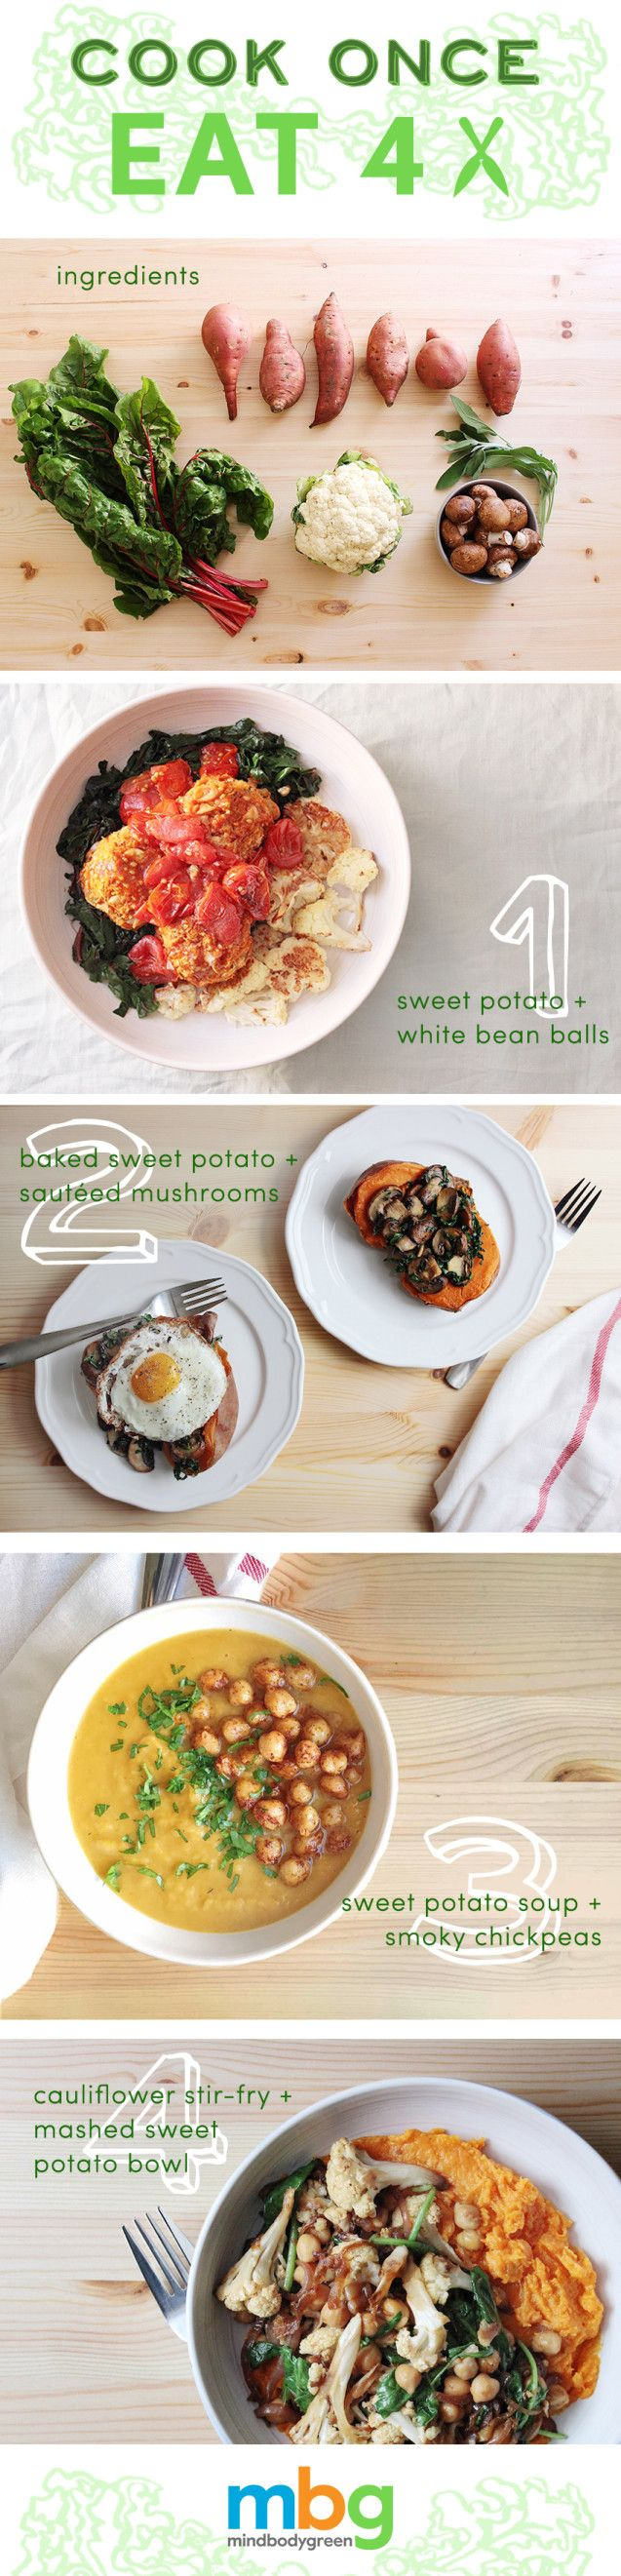 178 best flight attendant meal ideas images on pinterest cooking cook once eat healthy all week forumfinder Images